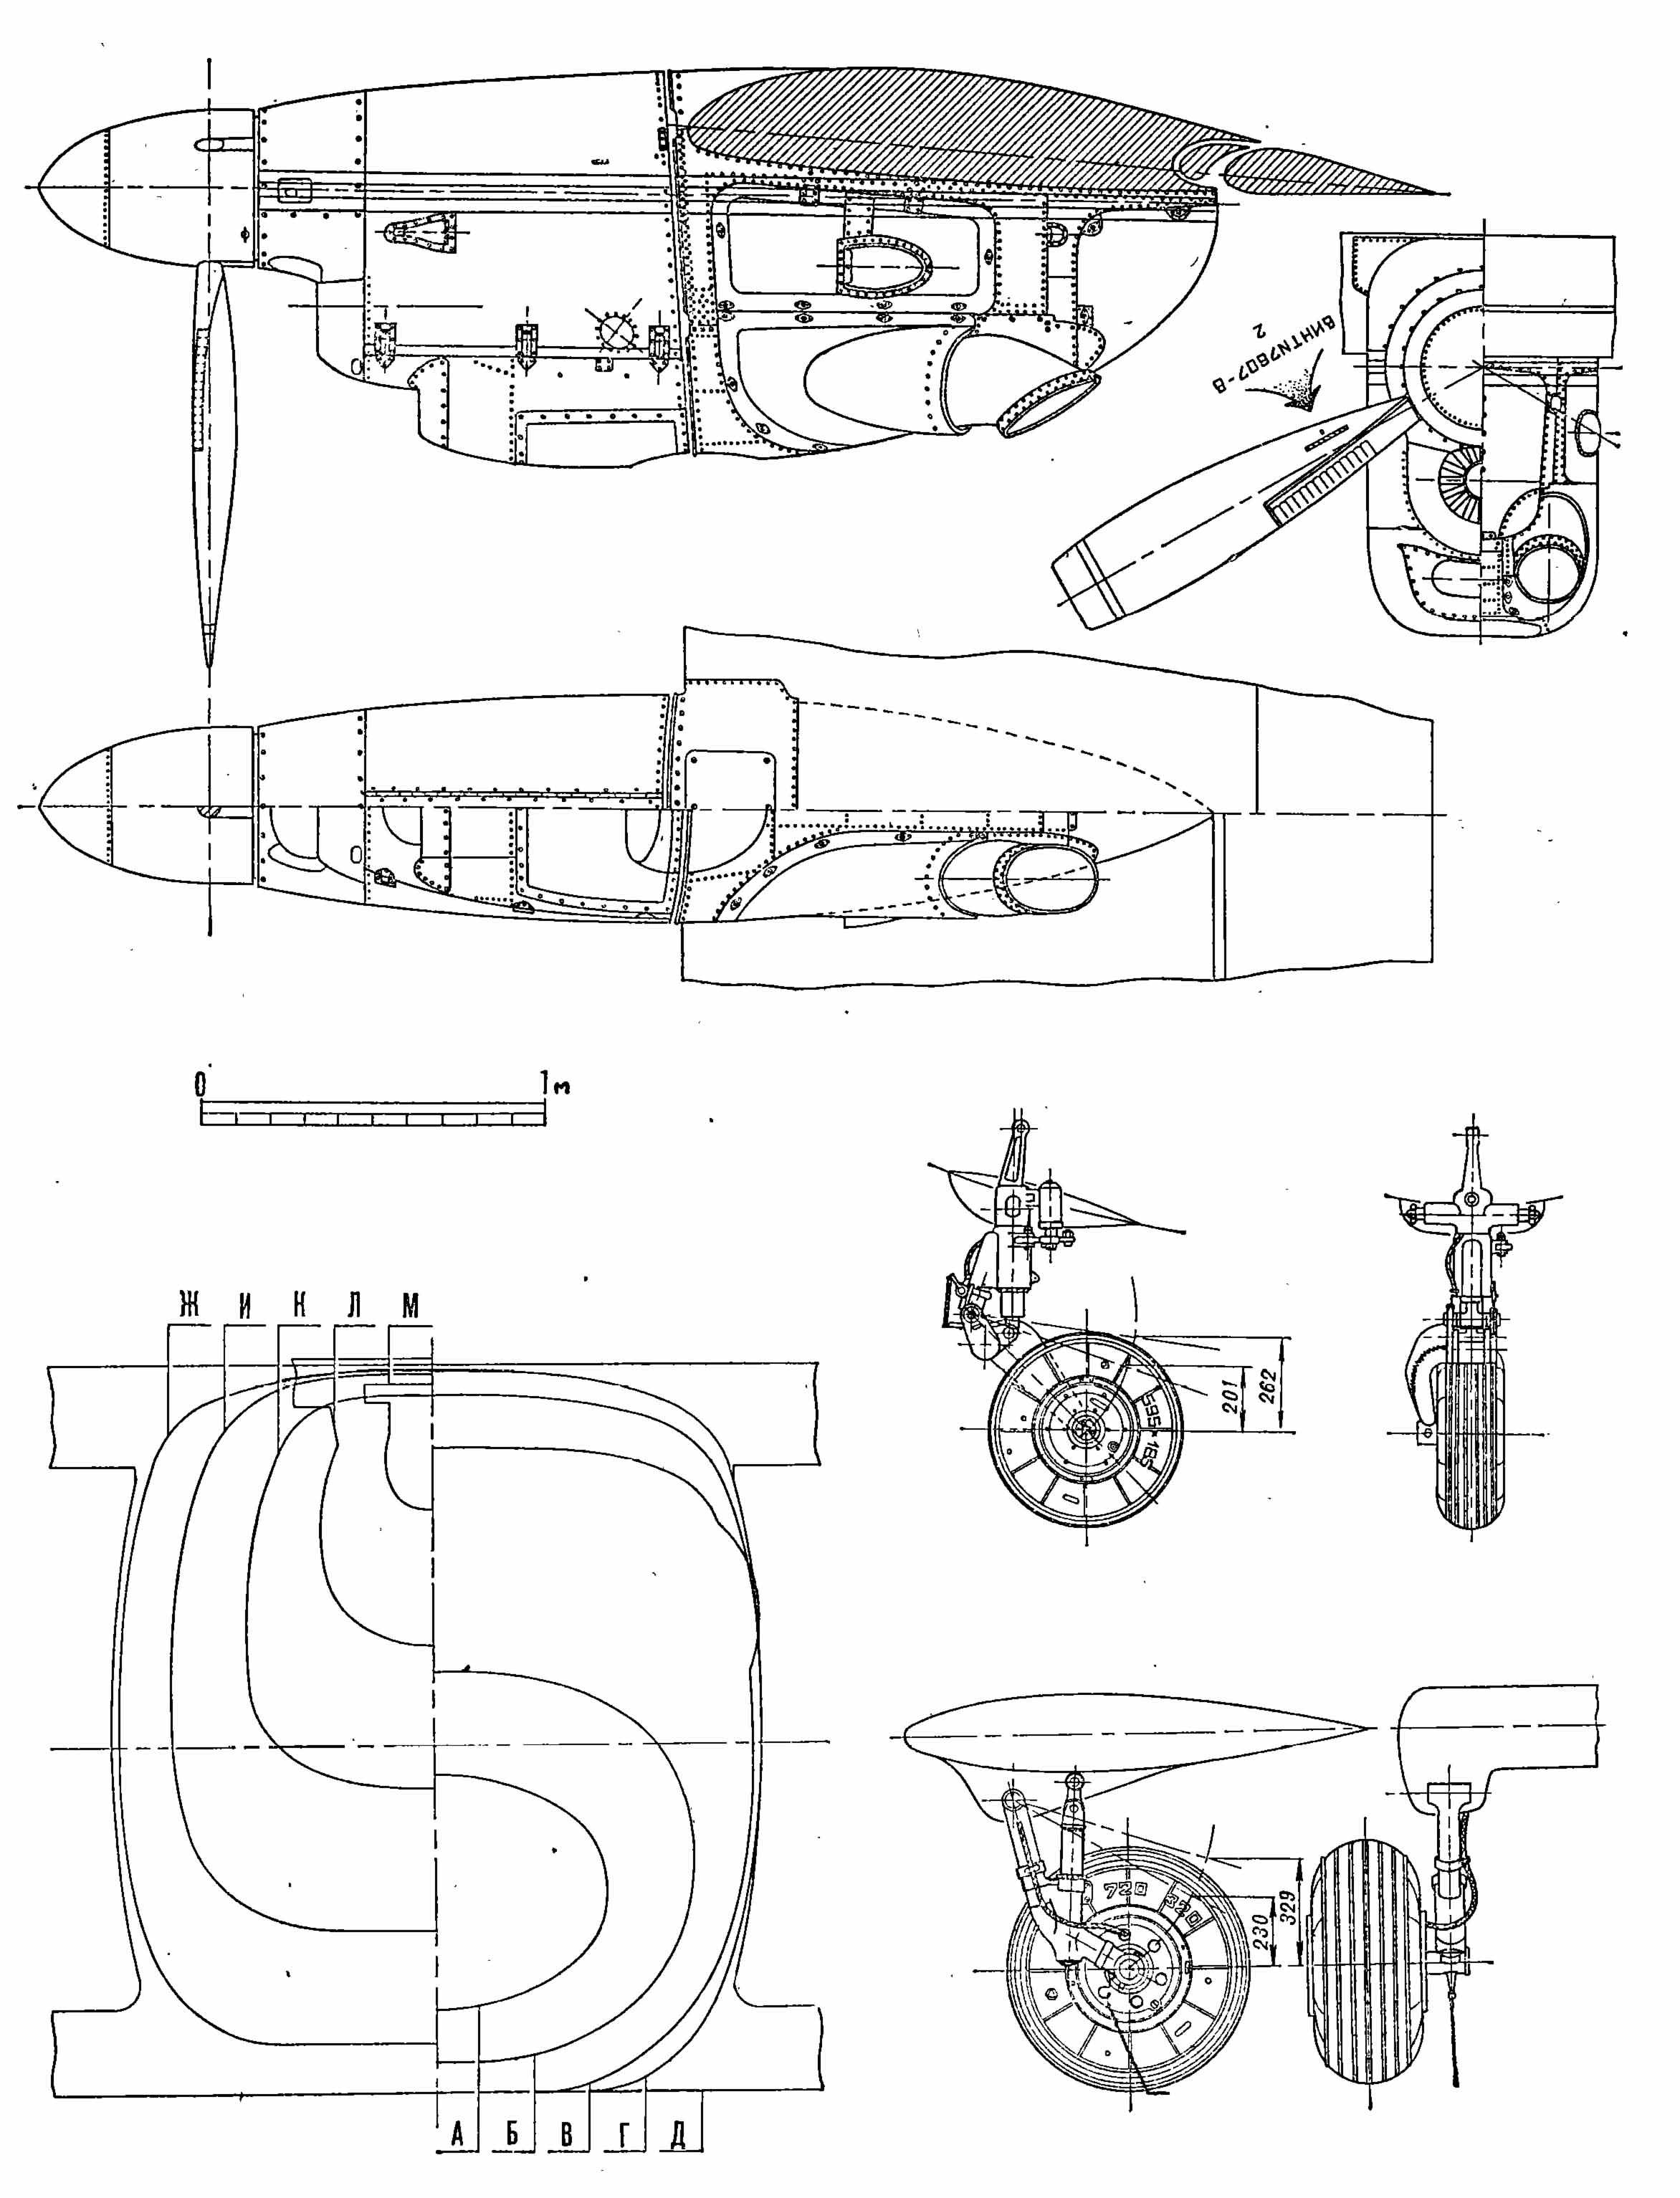 AN-28 blueprint